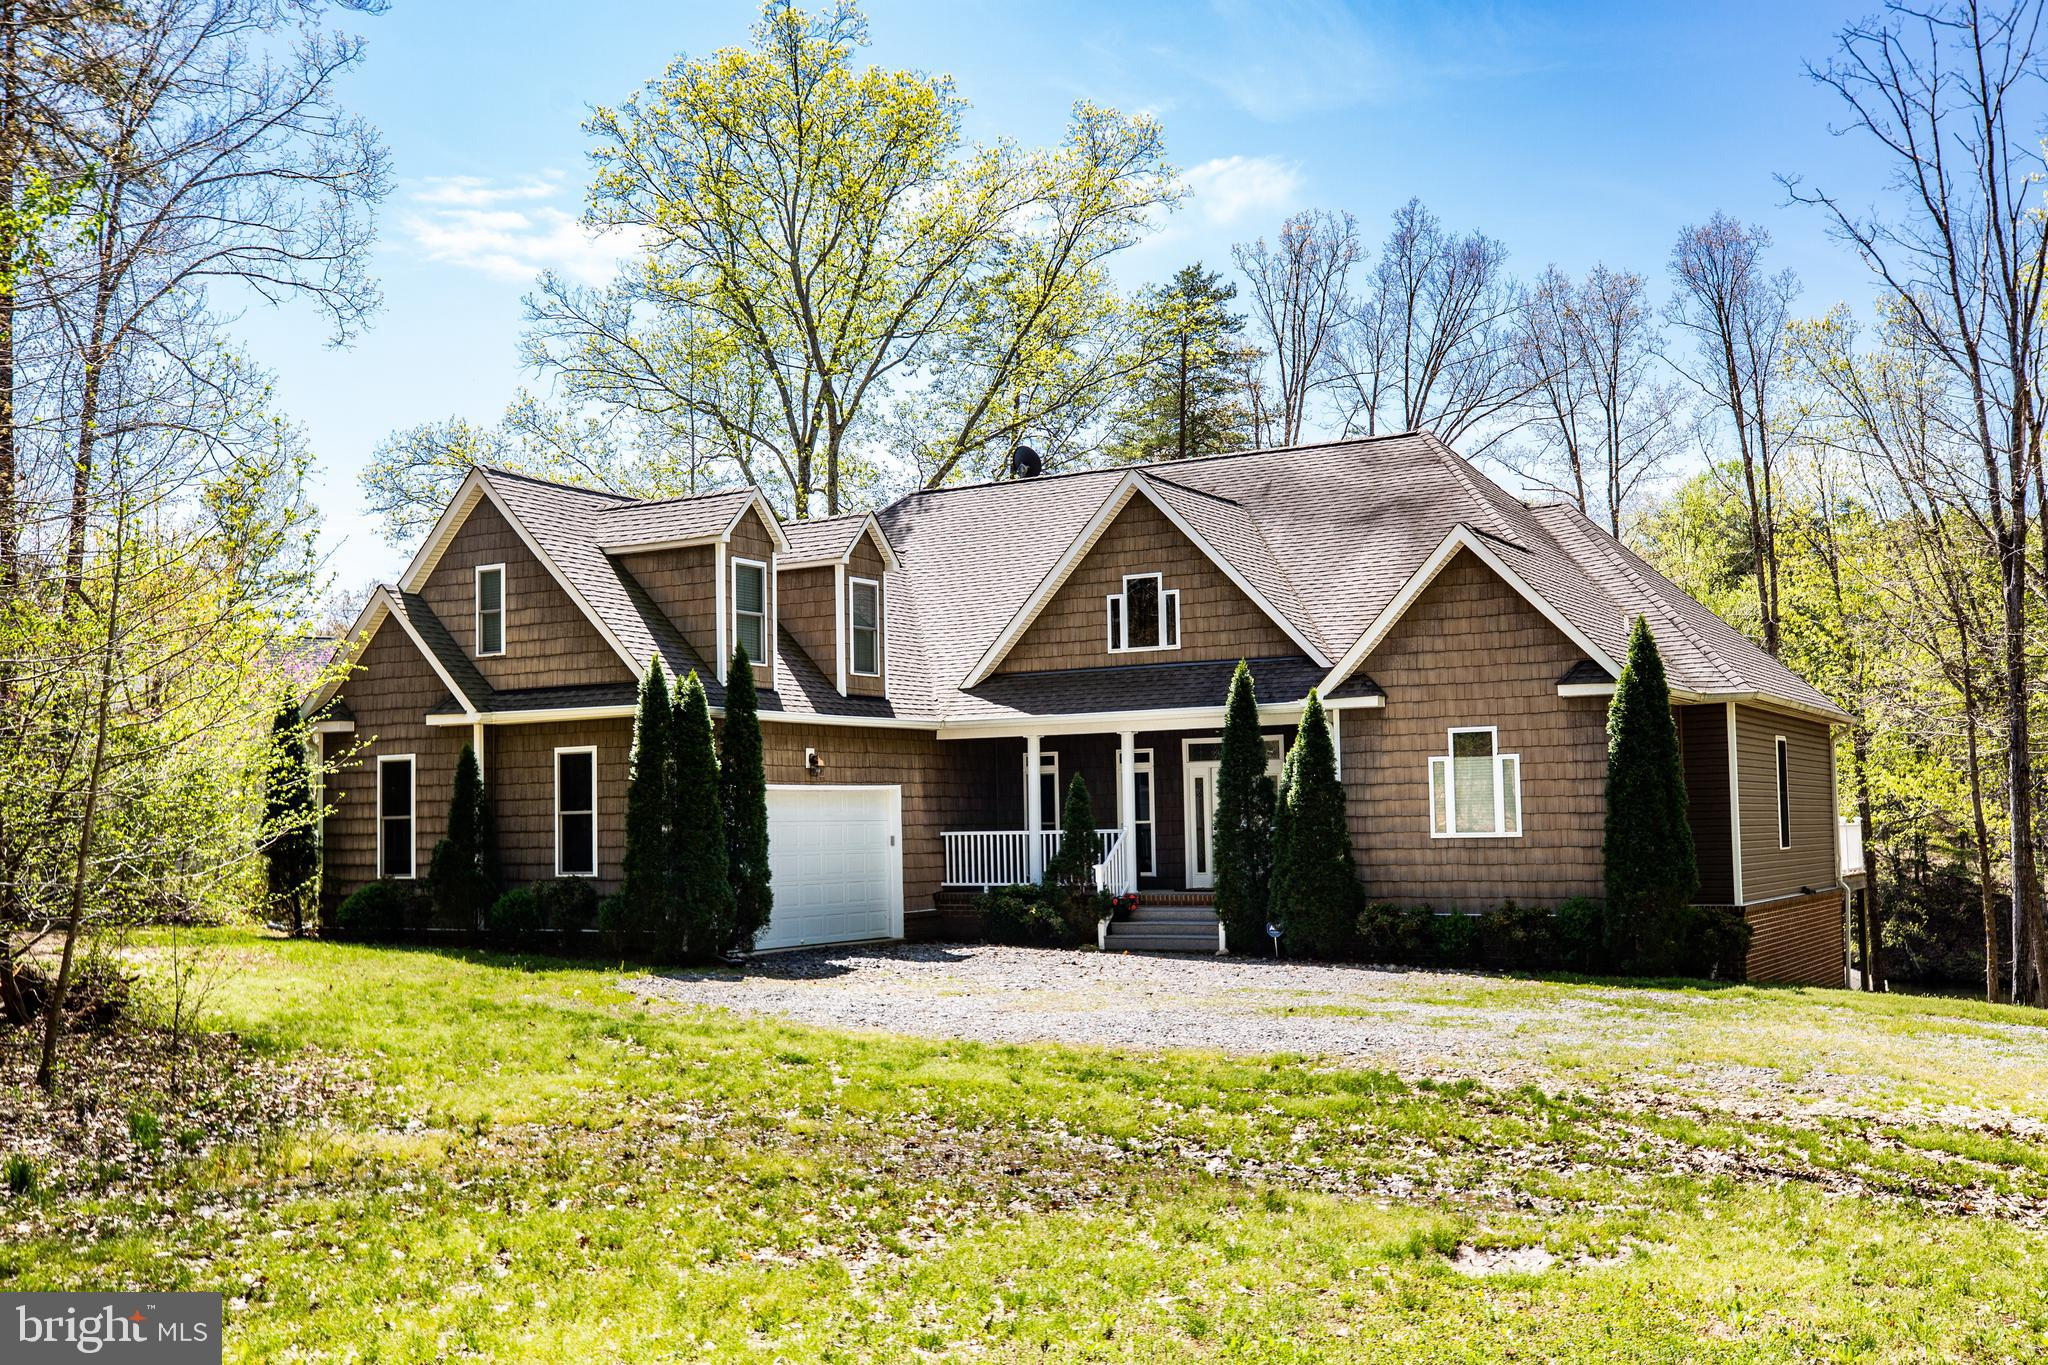 161 ROSE CIRCLE, BUMPASS, VA 23024